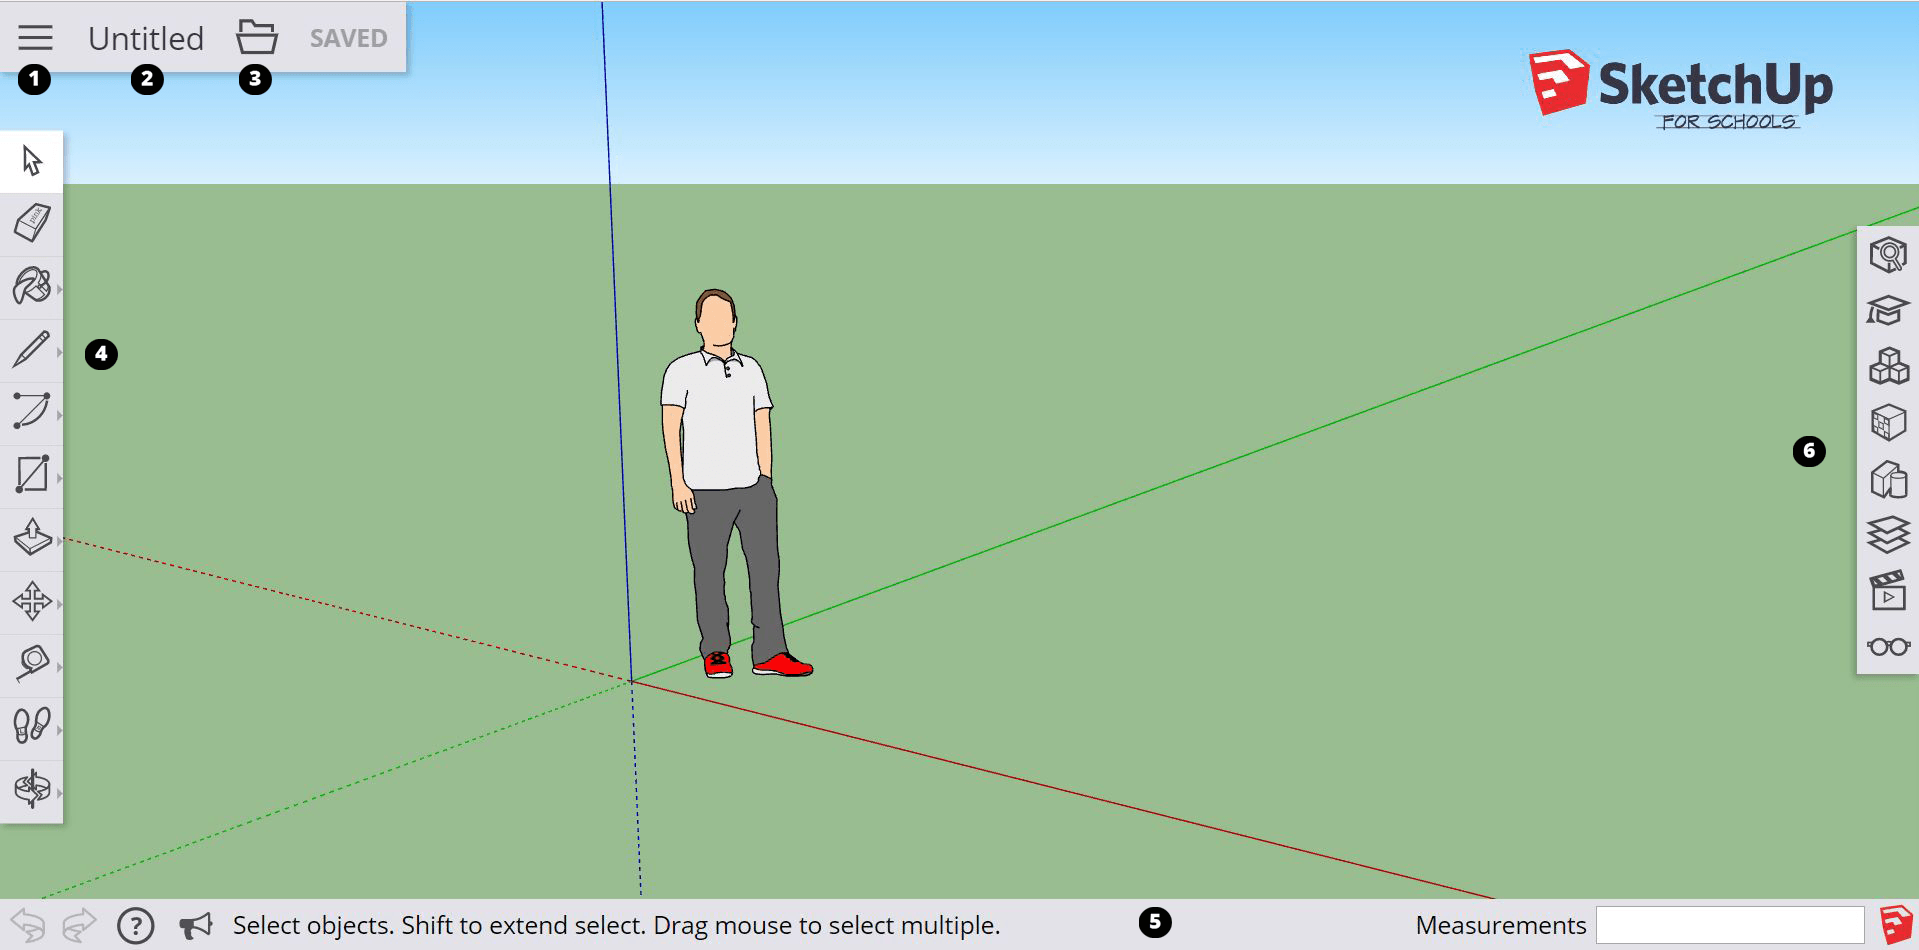 The modeling interface in SketchUp for Schools